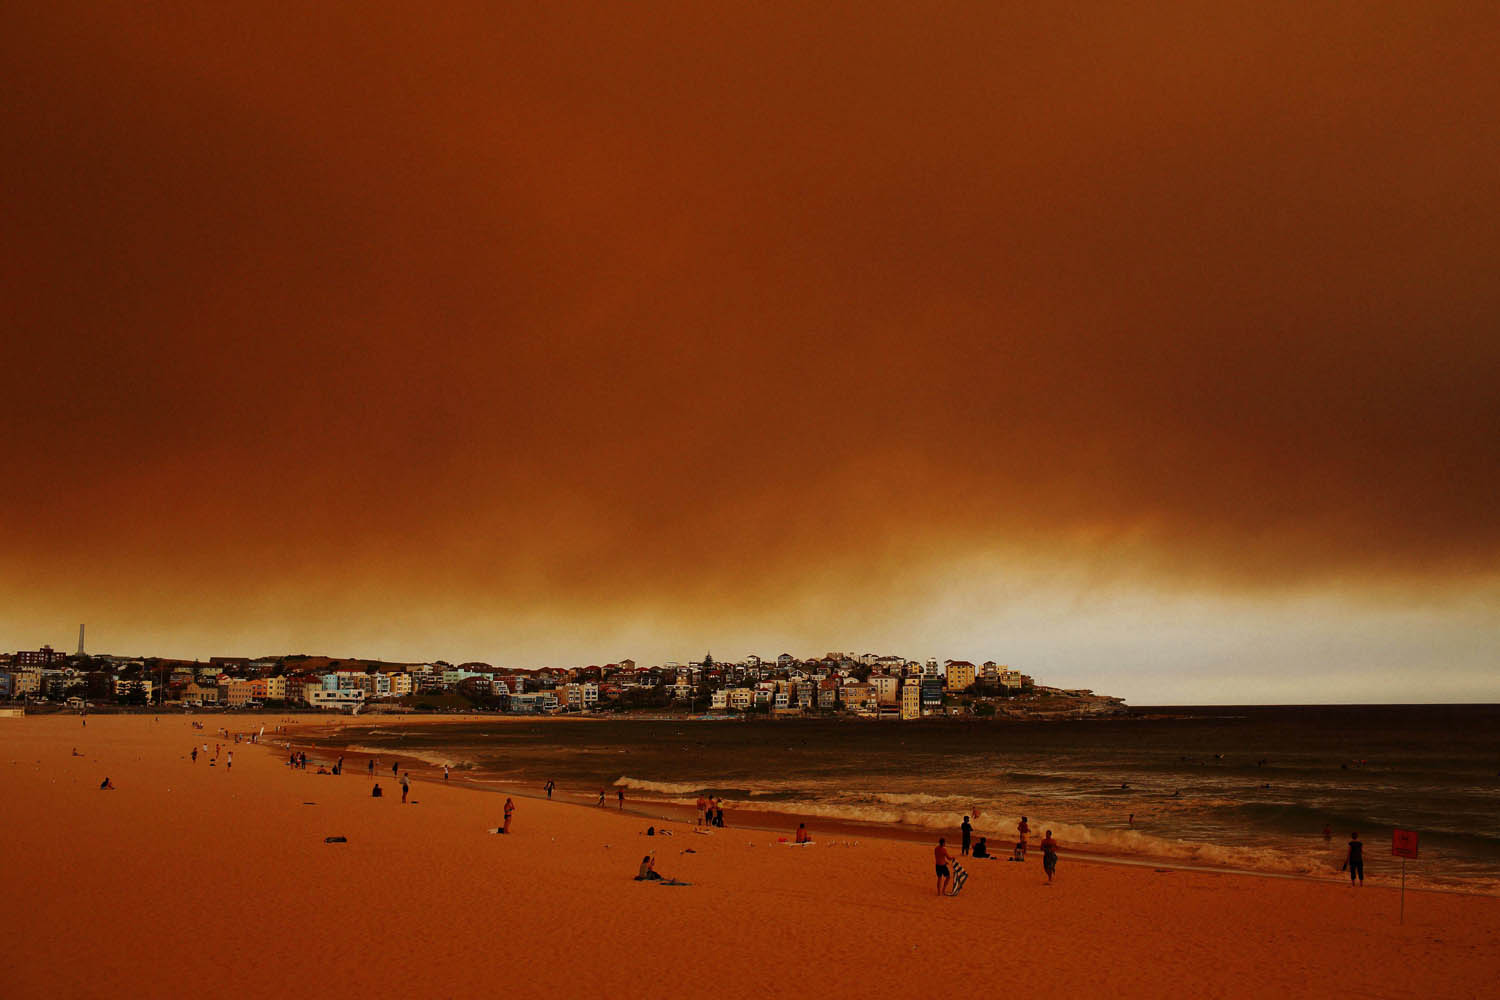 Oct. 17, 2013. Plumes of smoke were visible from Bondi Beach after strong north westerly winds and high temperatures resulted in dozens of bush fires across great Sydney, the Blue Mountains and the Southern Highlands in Australia.